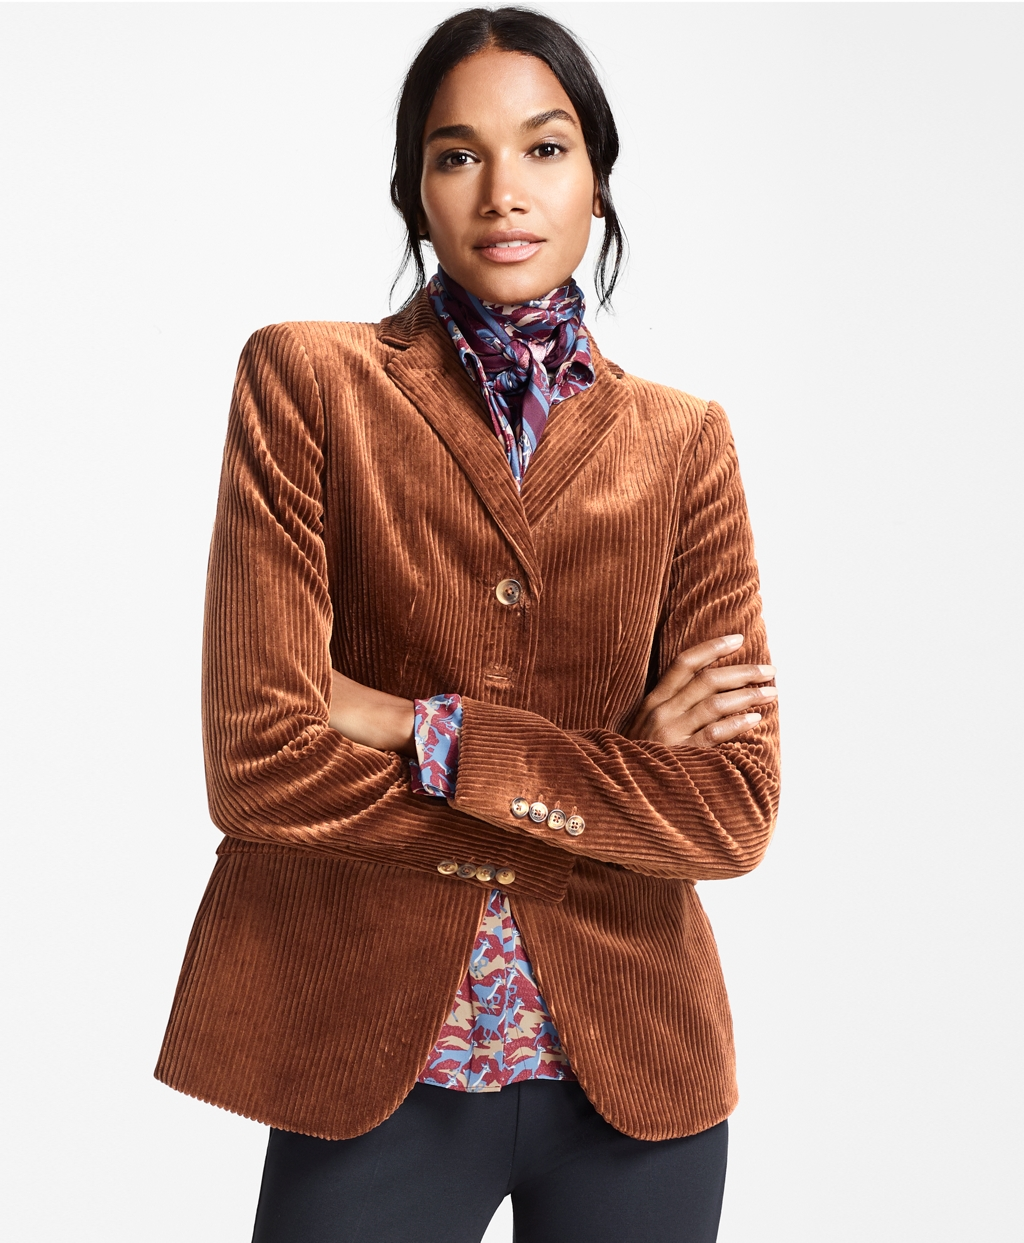 1960s Coats and Jackets Brooks Brothers Womens Cotton Corduroy Jacket $398.00 AT vintagedancer.com